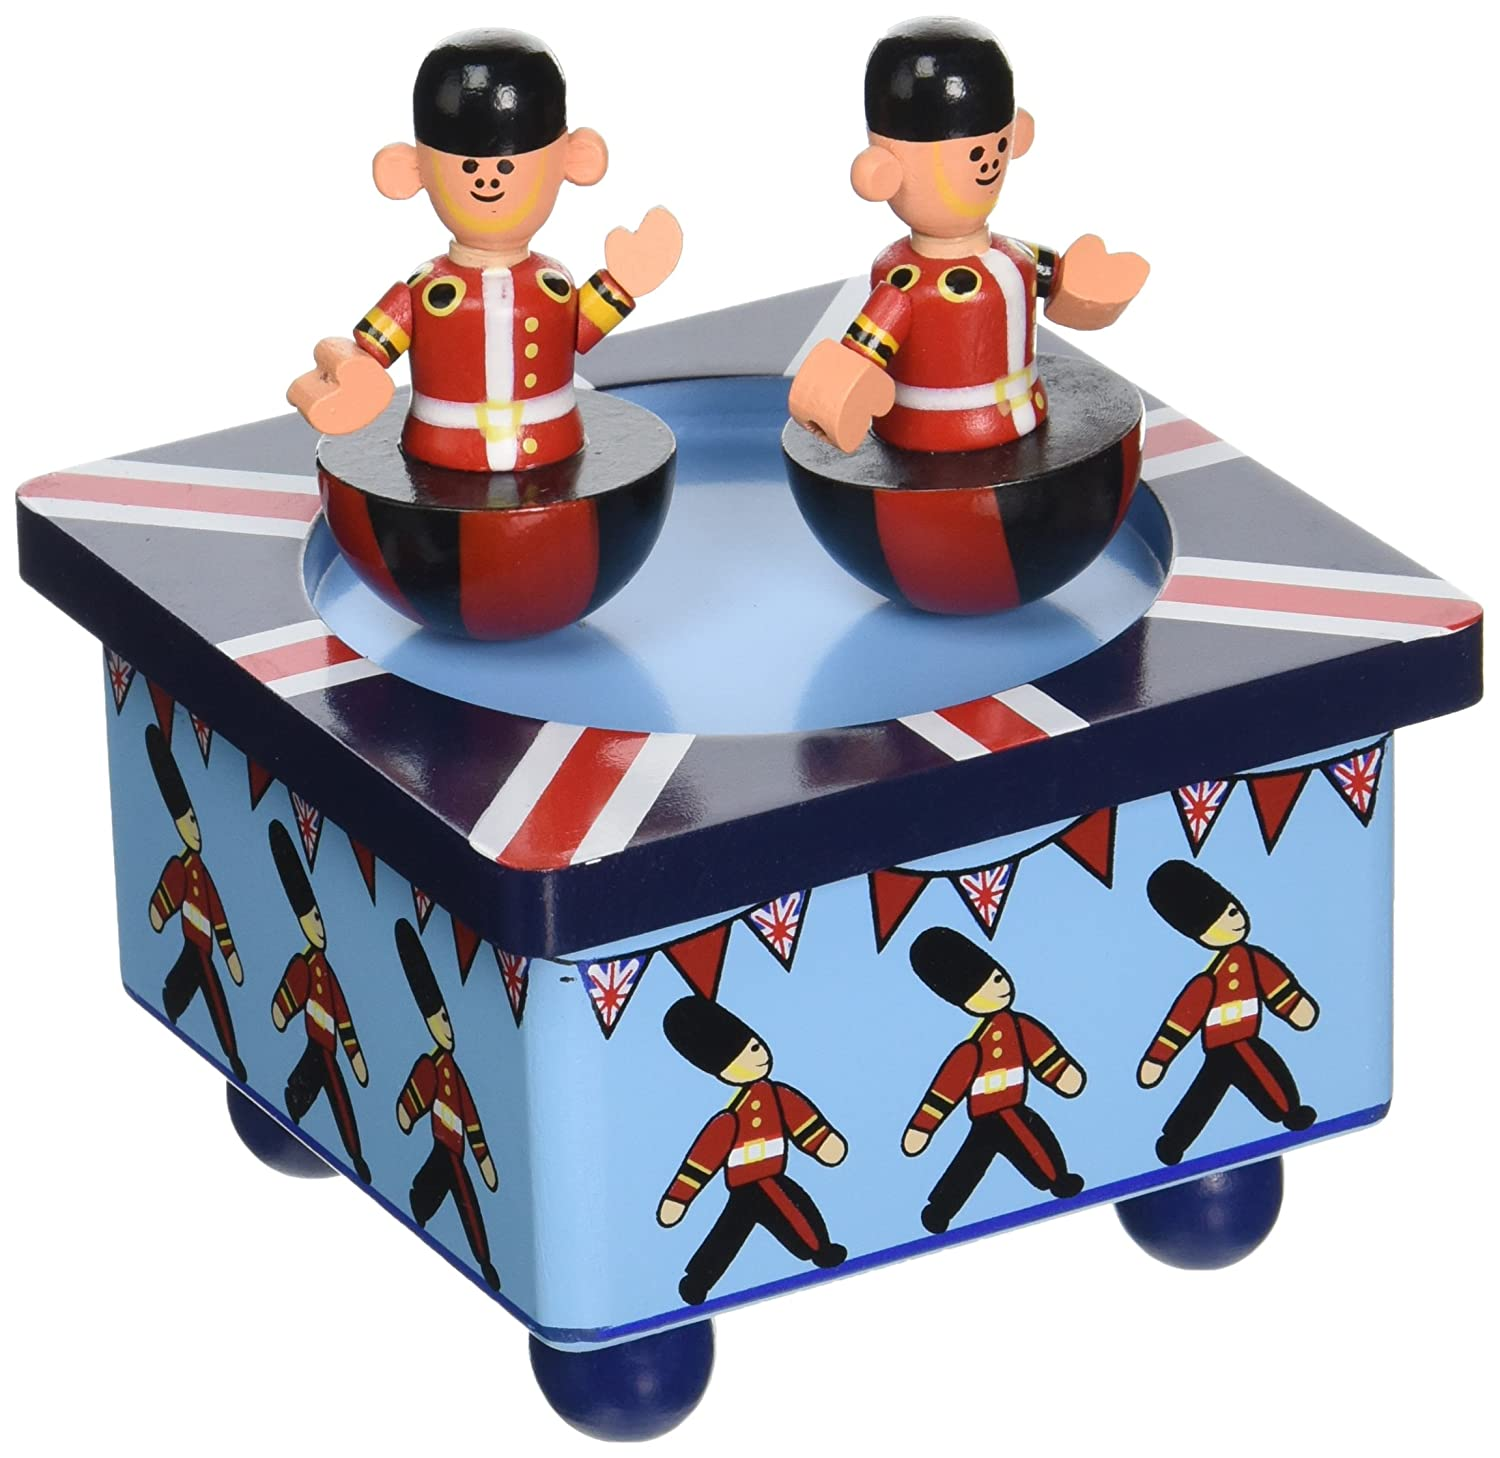 Orange Tree Toys Wooden Soldier Music Box RY91A16311